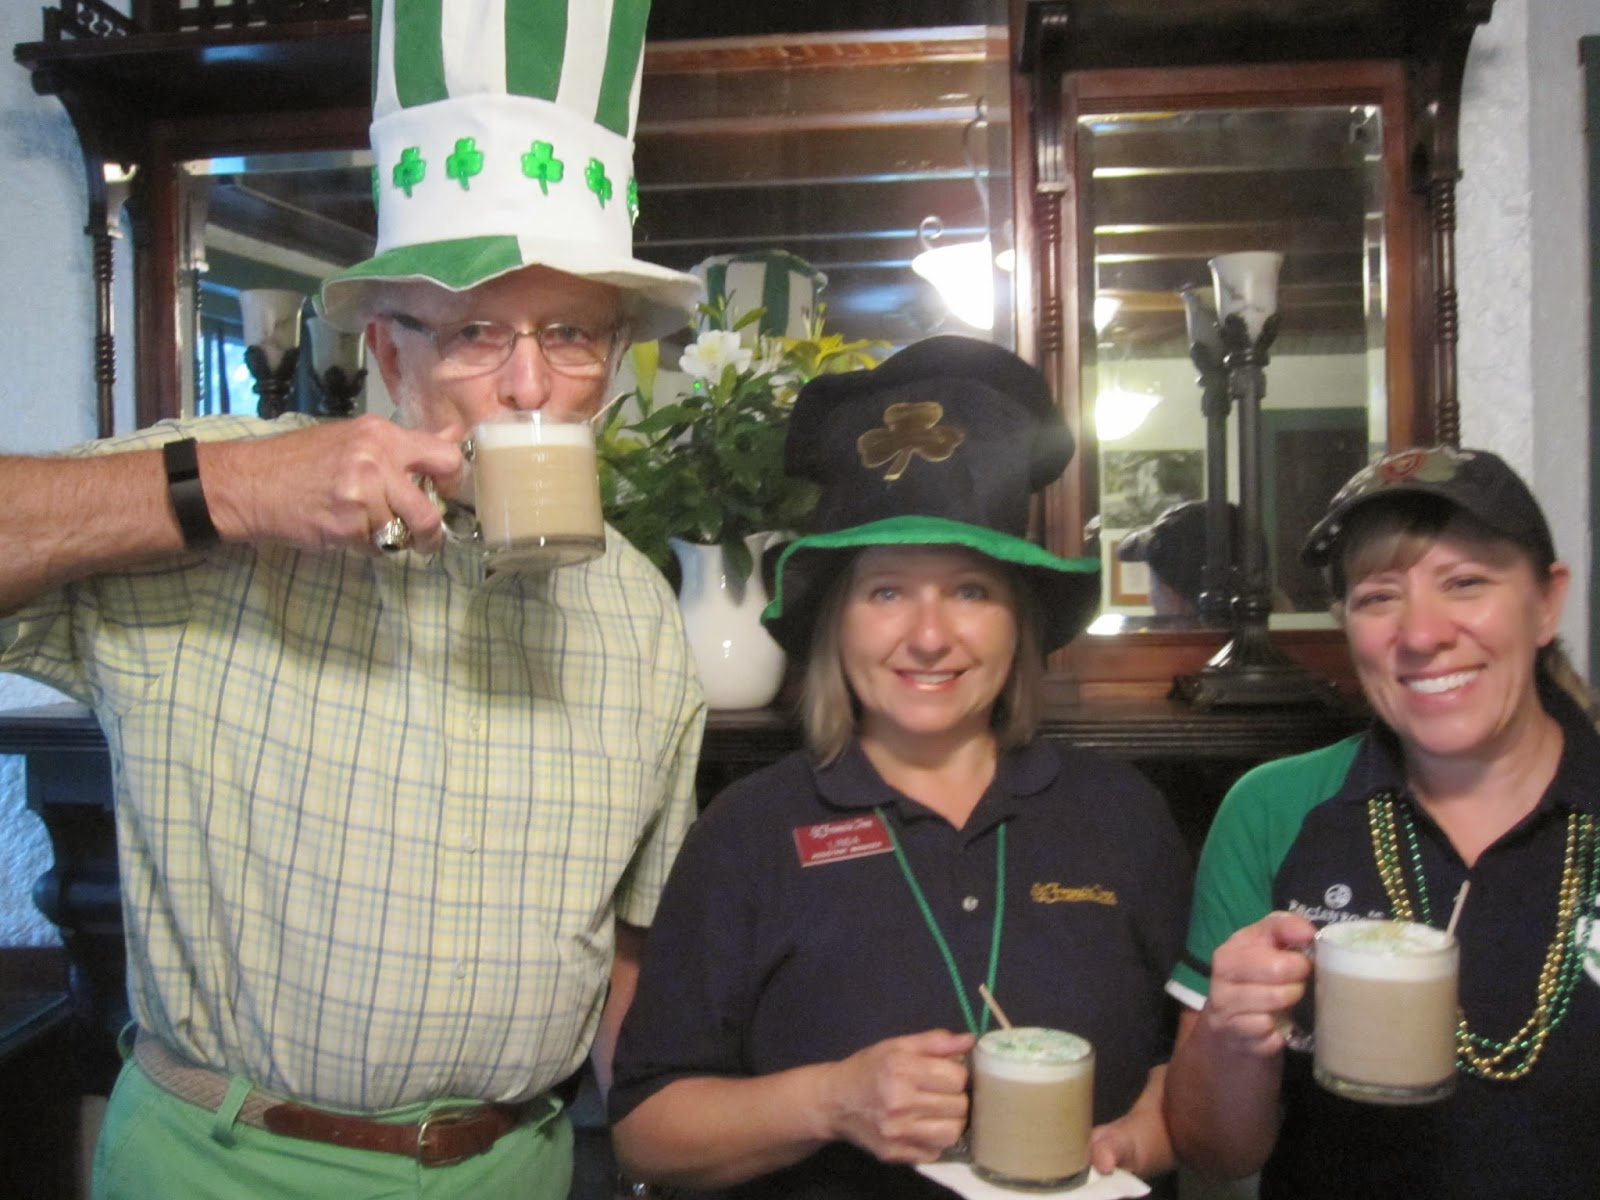 St Paddy's Day....stormin' rainin' drinkin' 1 IMG 4617 St. Francis Inn St. Augustine Bed and Breakfast